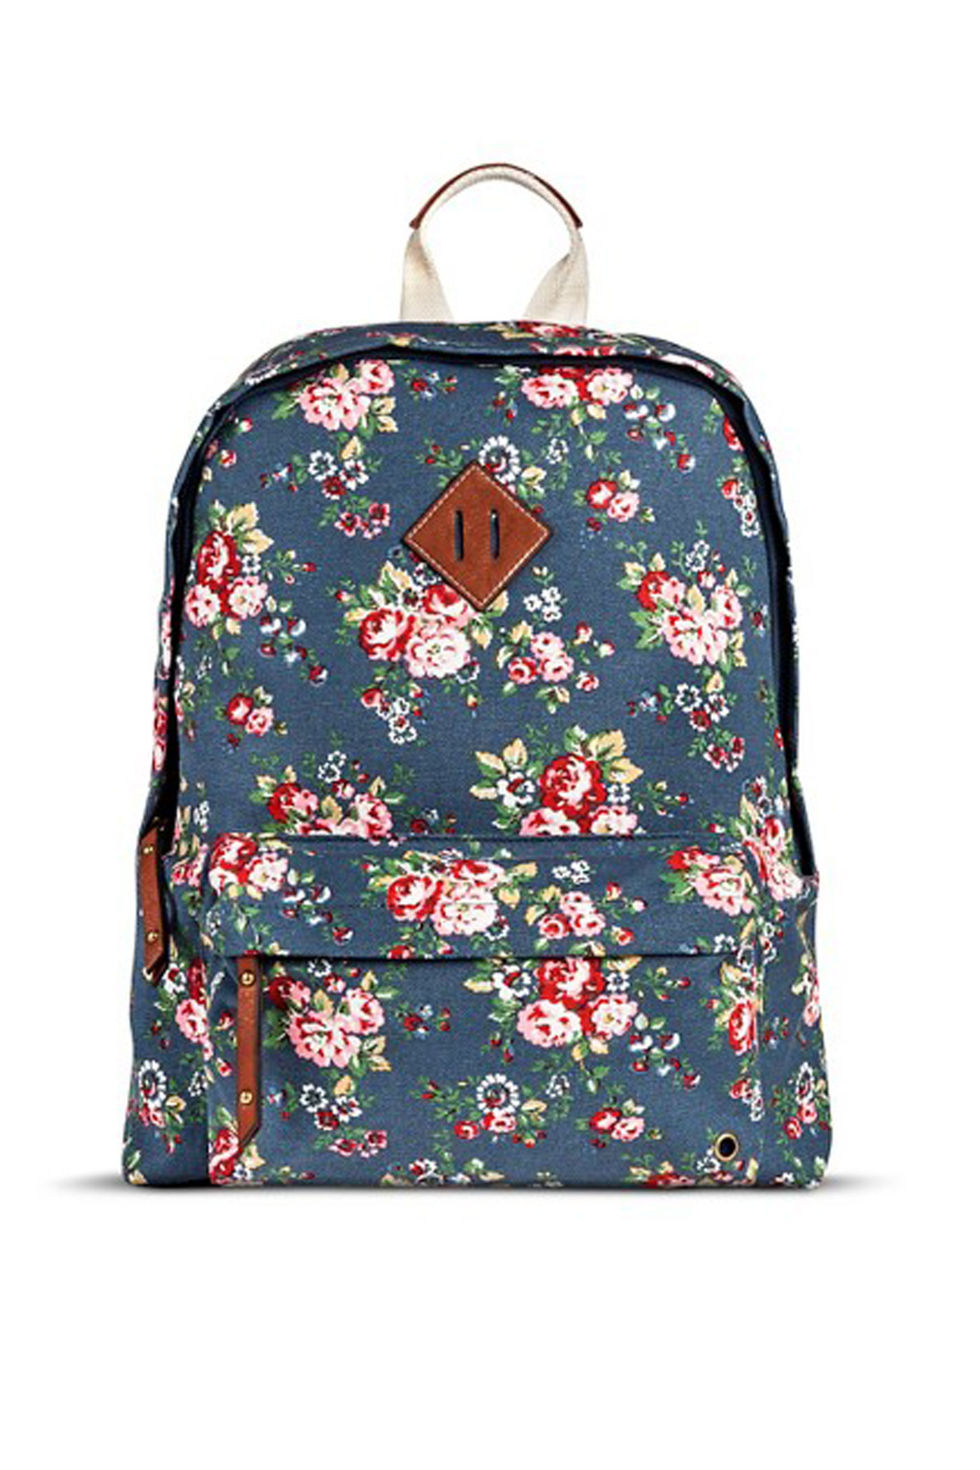 Pretty Backpacks For Girls 7BpDJOo9